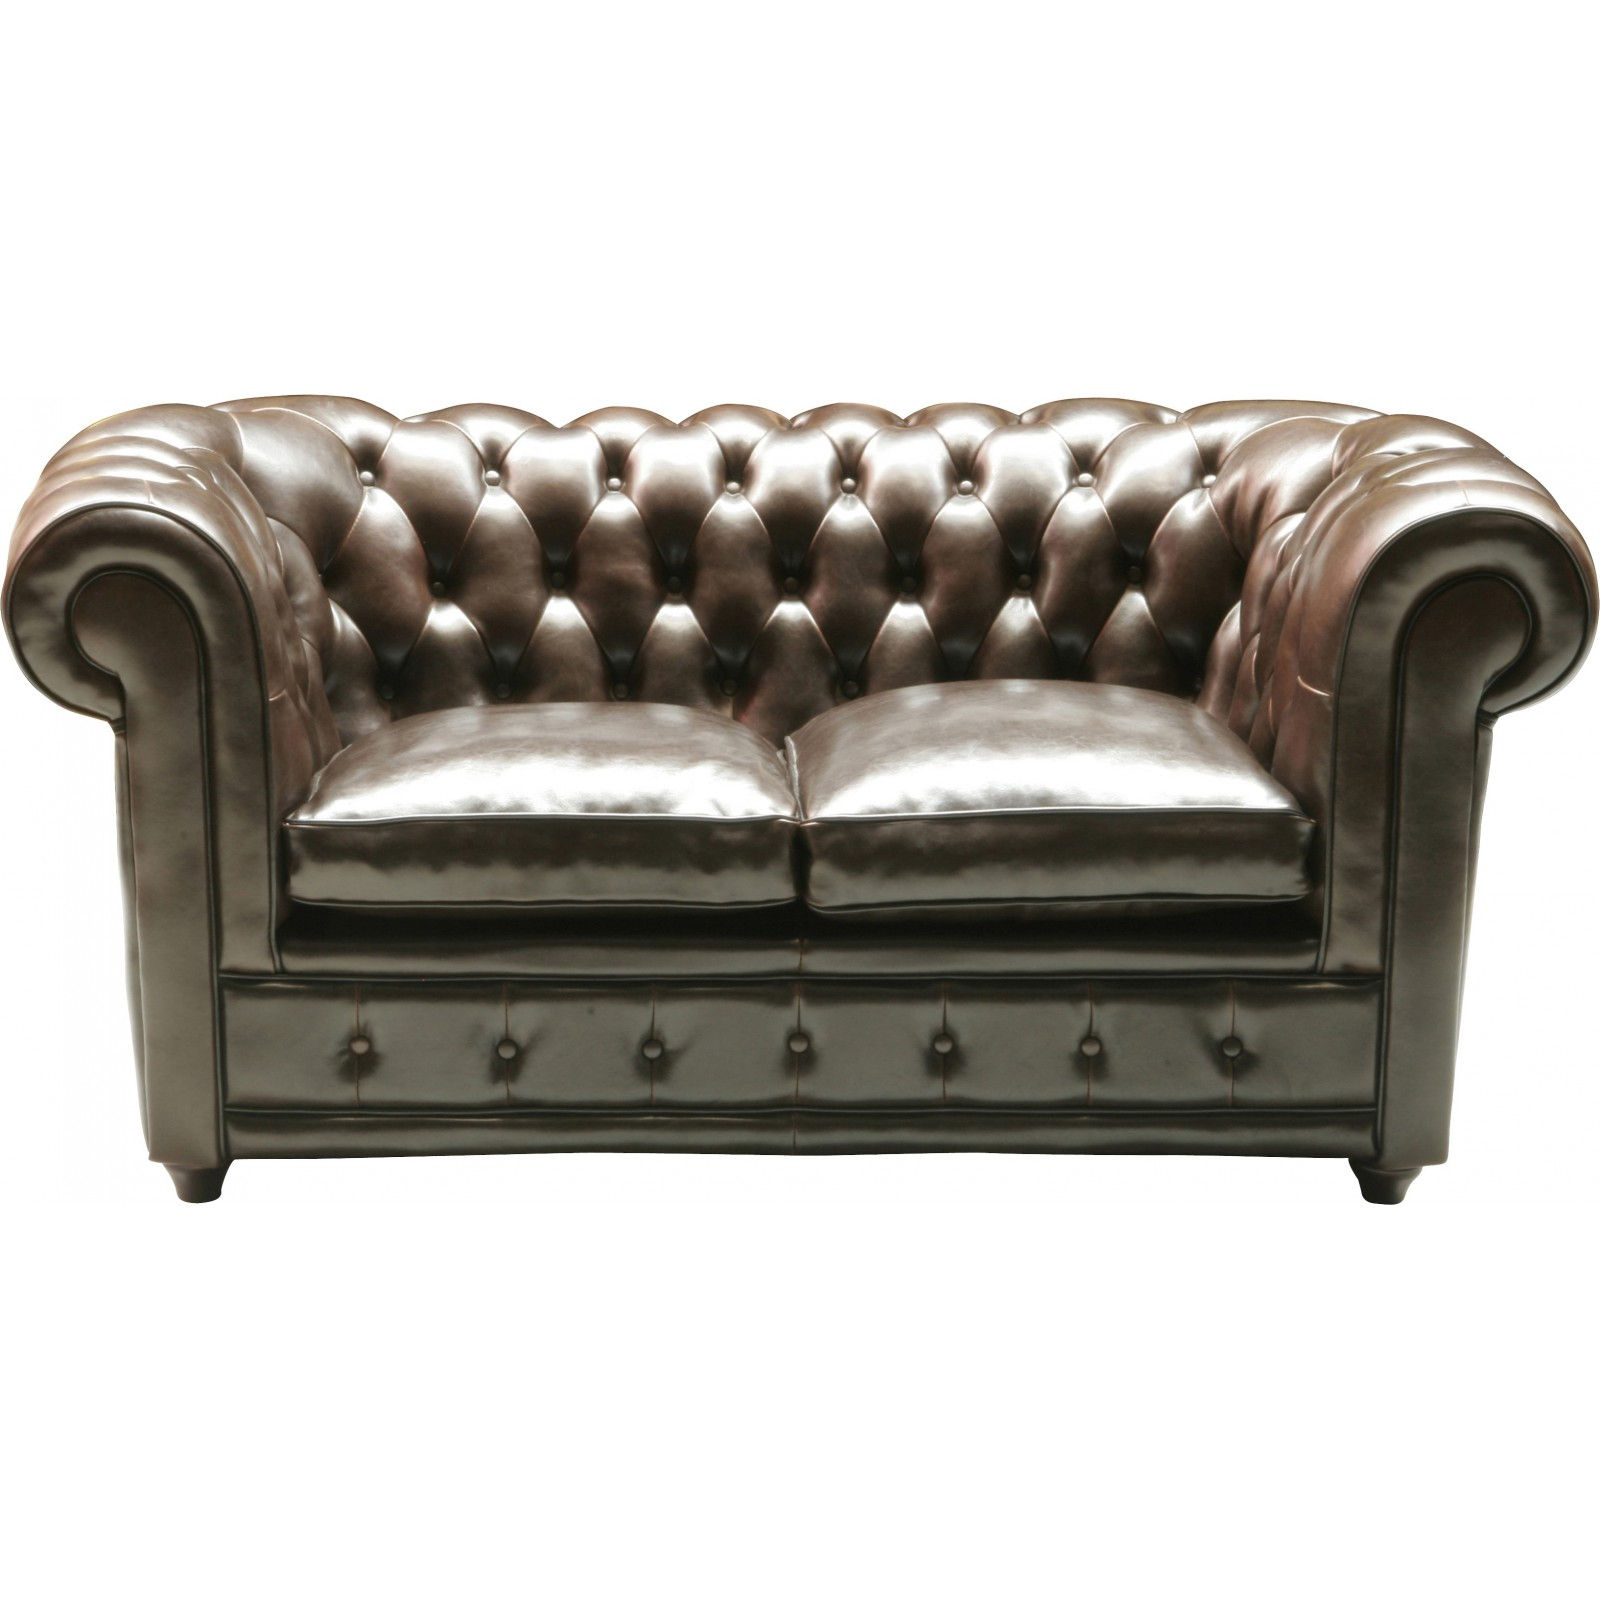 Canapé Cuir 2 Places Design Canapé Chesterfield En Cuir Oxford Kare Design